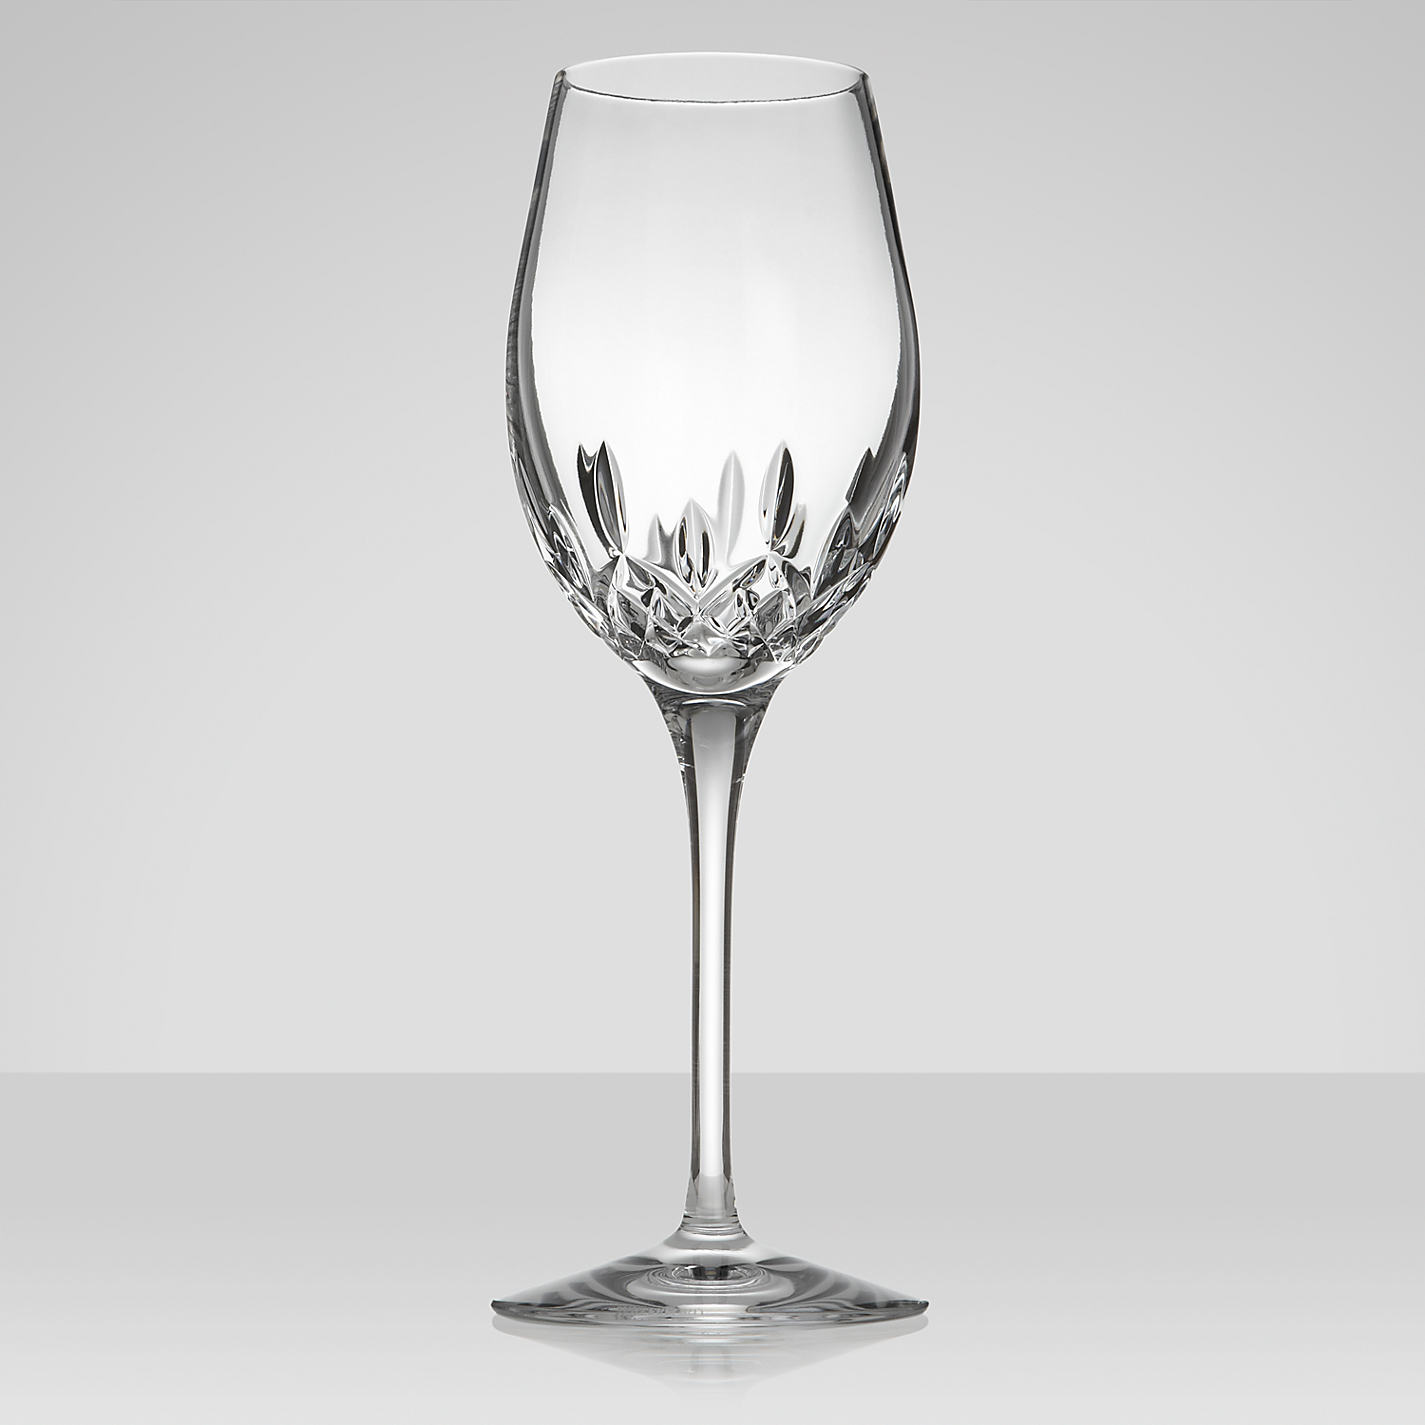 Incredible waterford crystal patterns for dining sets ideas with waterford crystal glass patterns